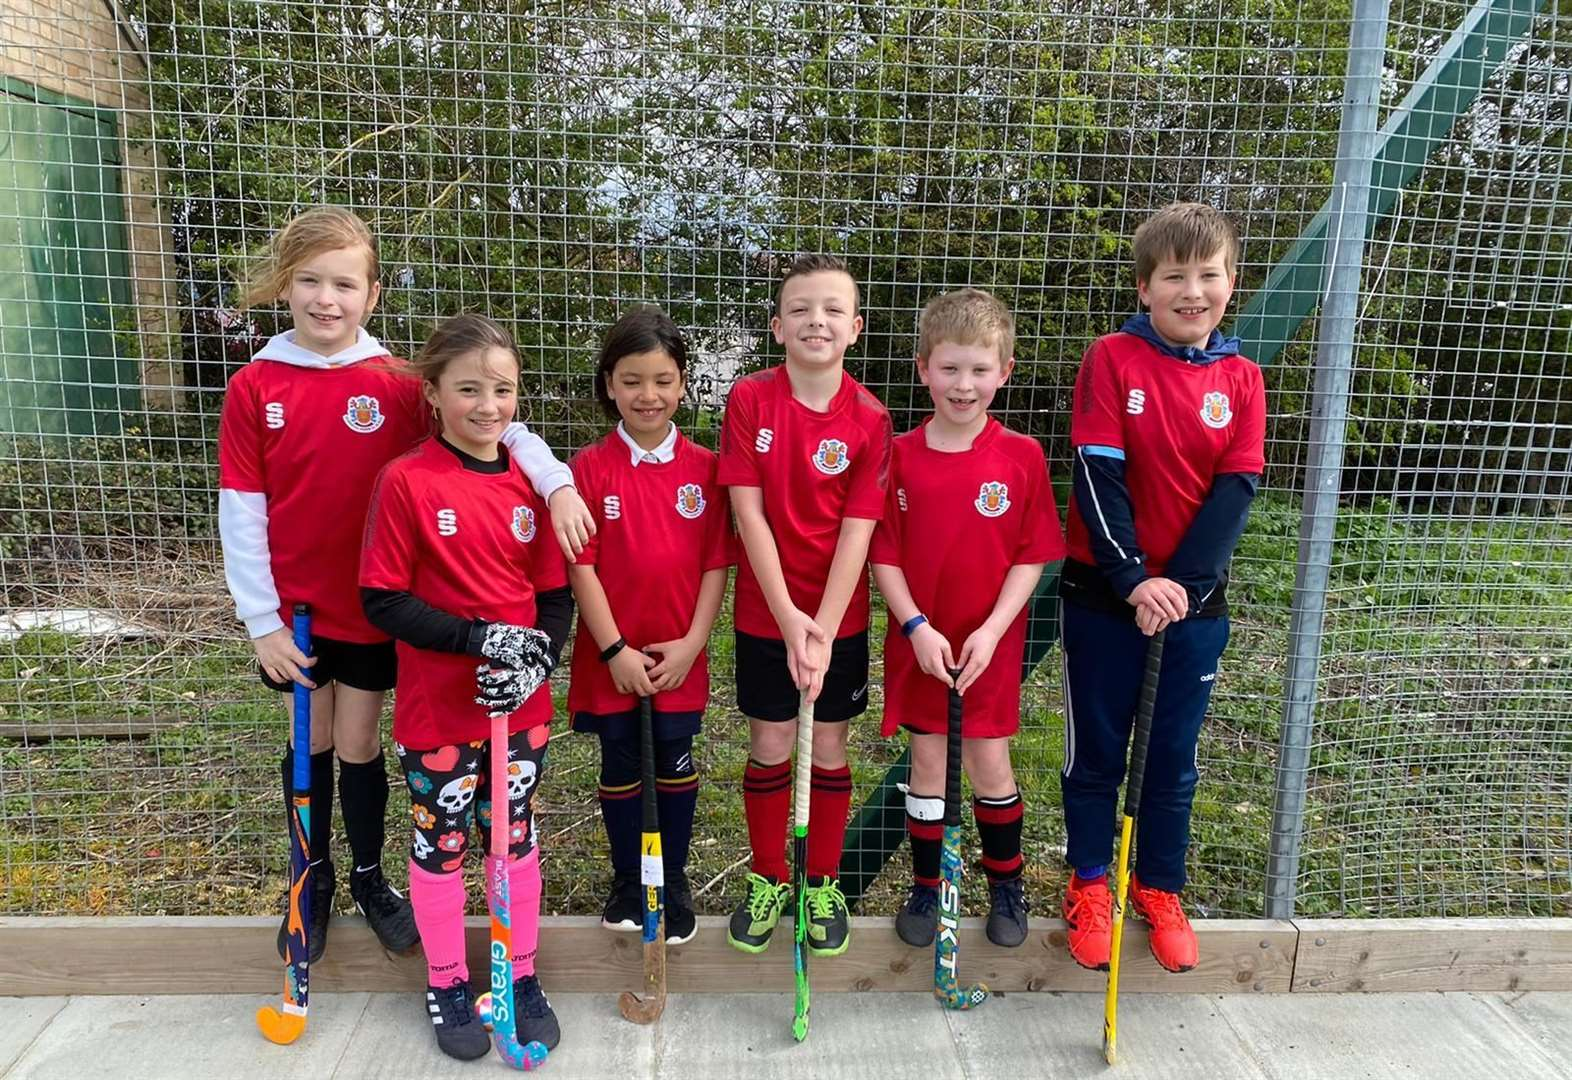 Hockey: Emma cooks four goals as 2nds going up